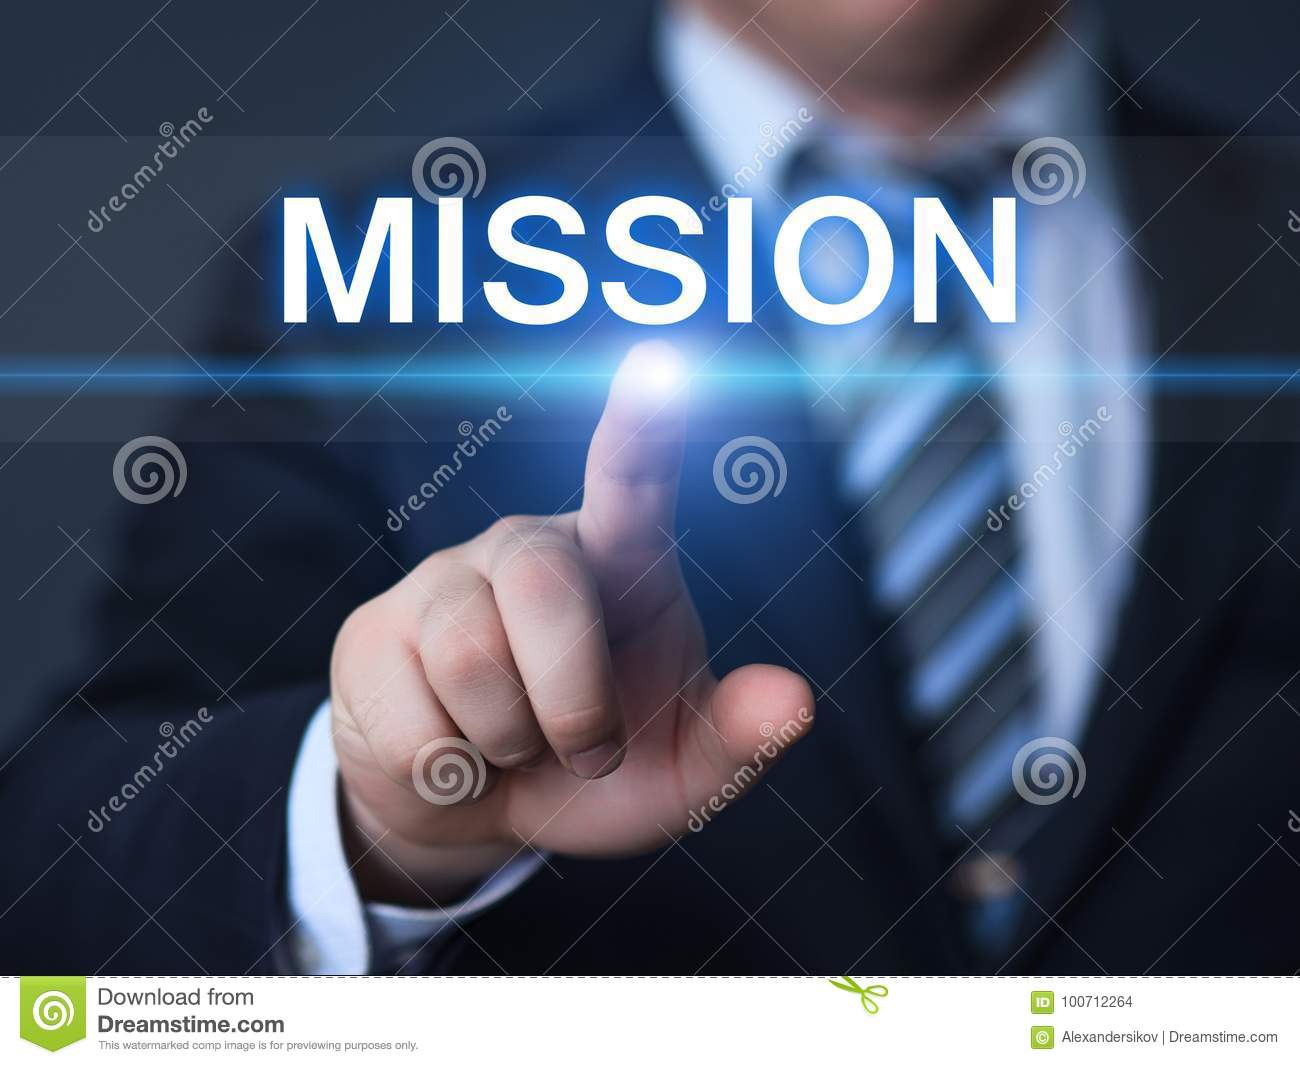 Mission Vision Strategy Company目标企业互联网技术概念